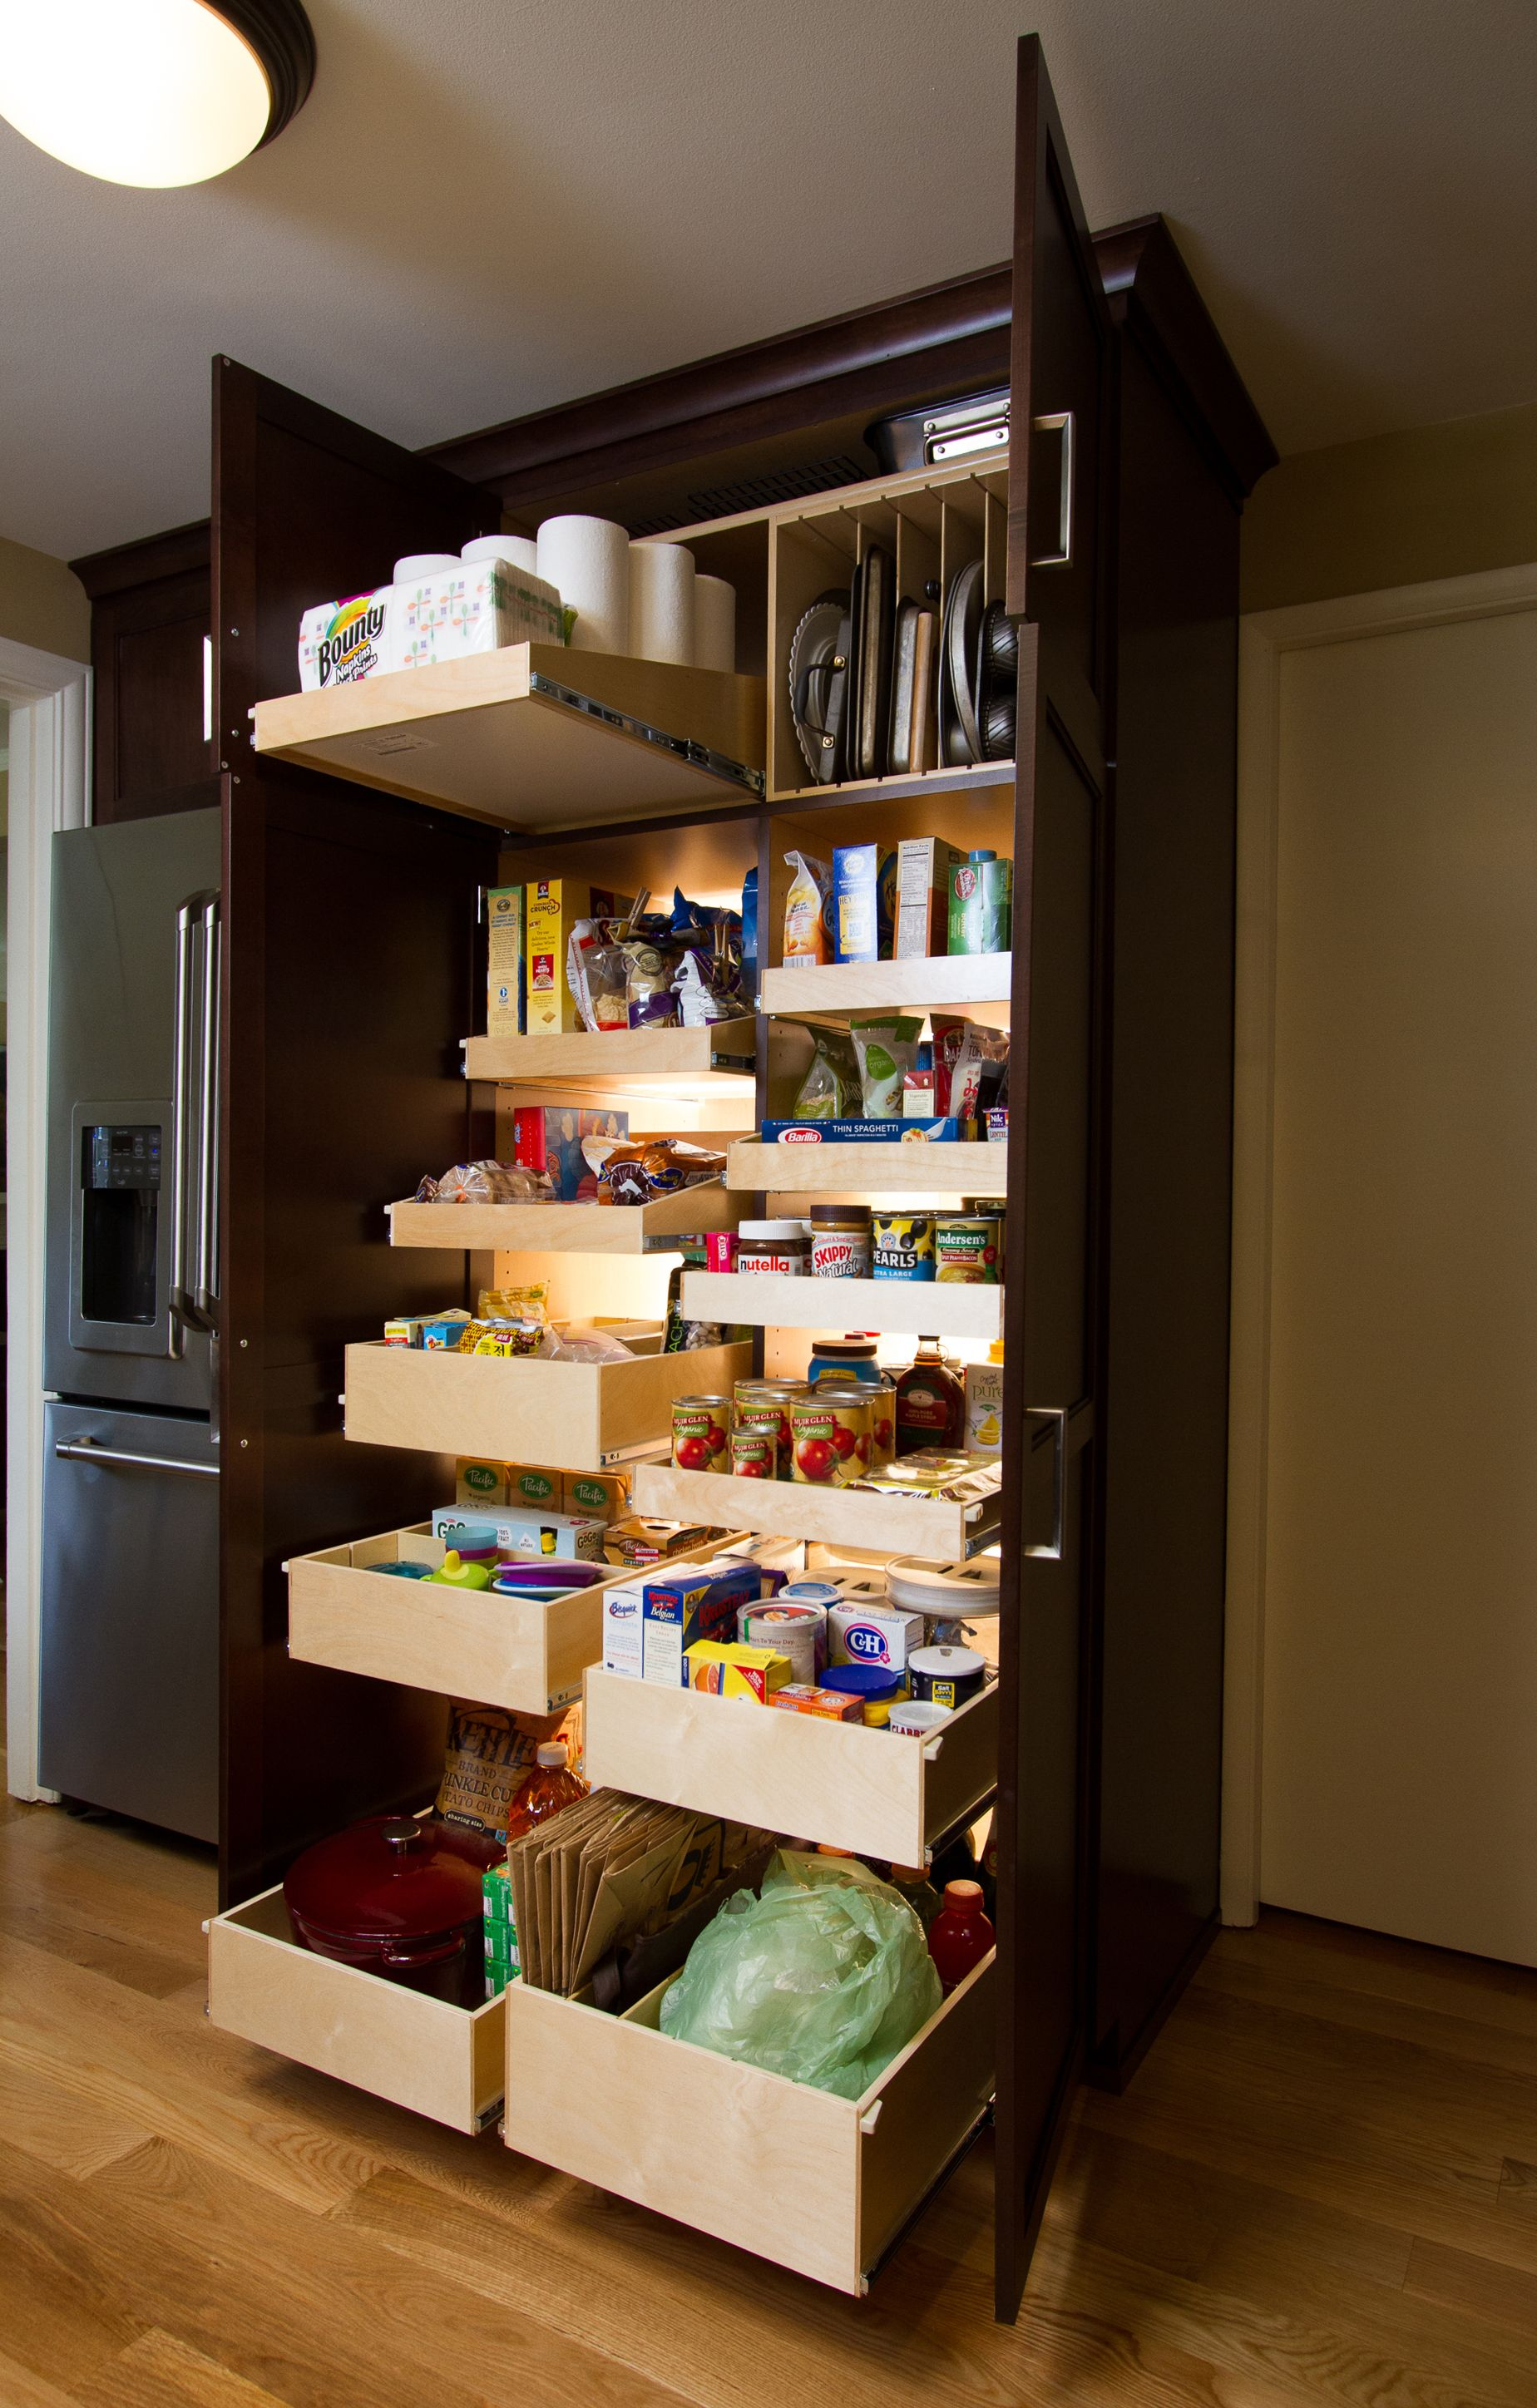 High Quality Bonus Pantry?  Http://shelfgenie.com/blog/wp Content/uploads/shelfgenie Seattle Custom  Pantry Pull Out Shelving